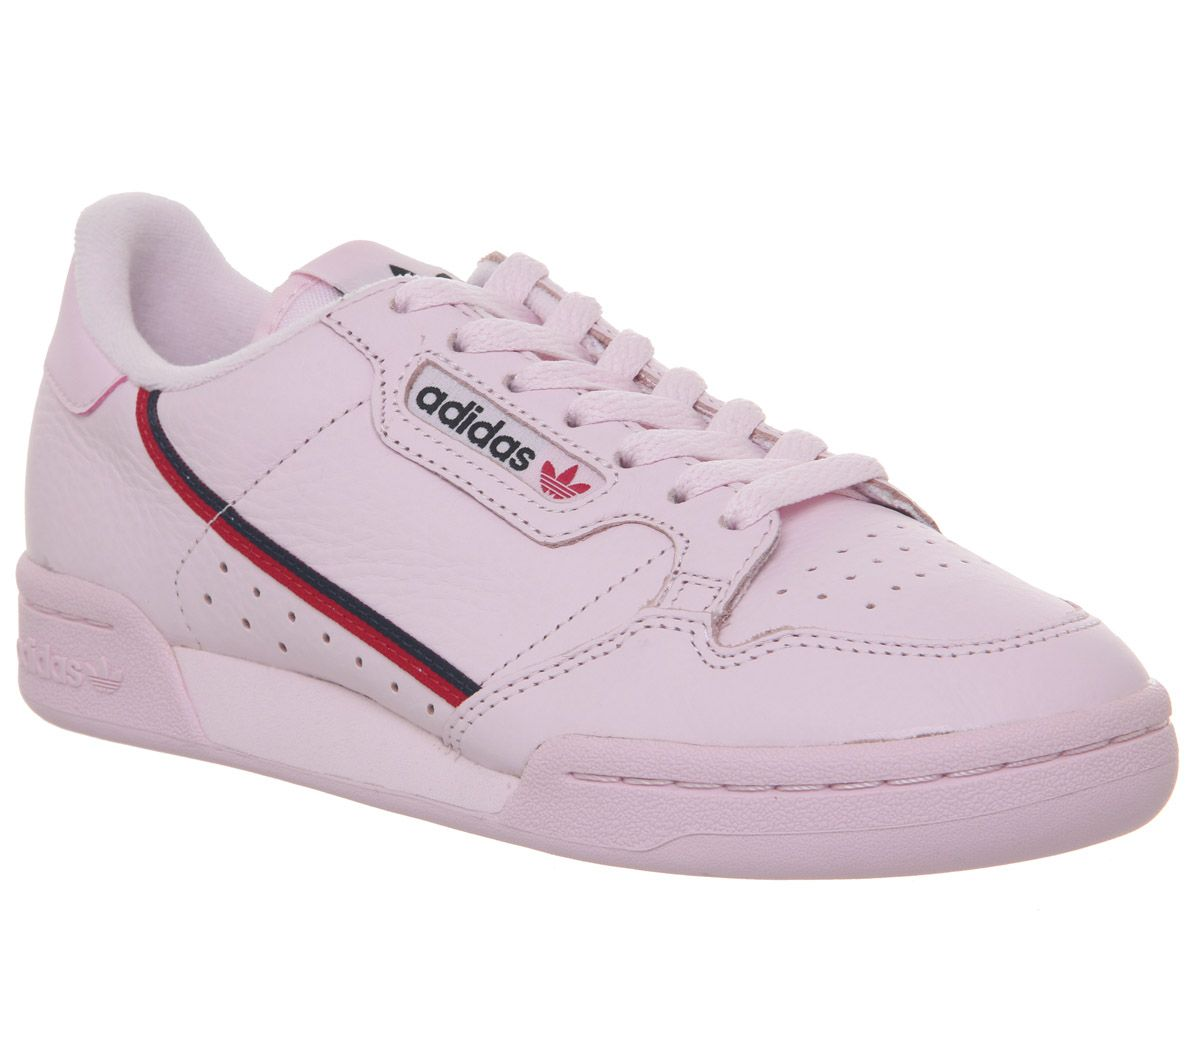 best website 1f54d 6c599 adidas Continental 80s Trainers Clear Pink Scarlet Collegiate Navy ...